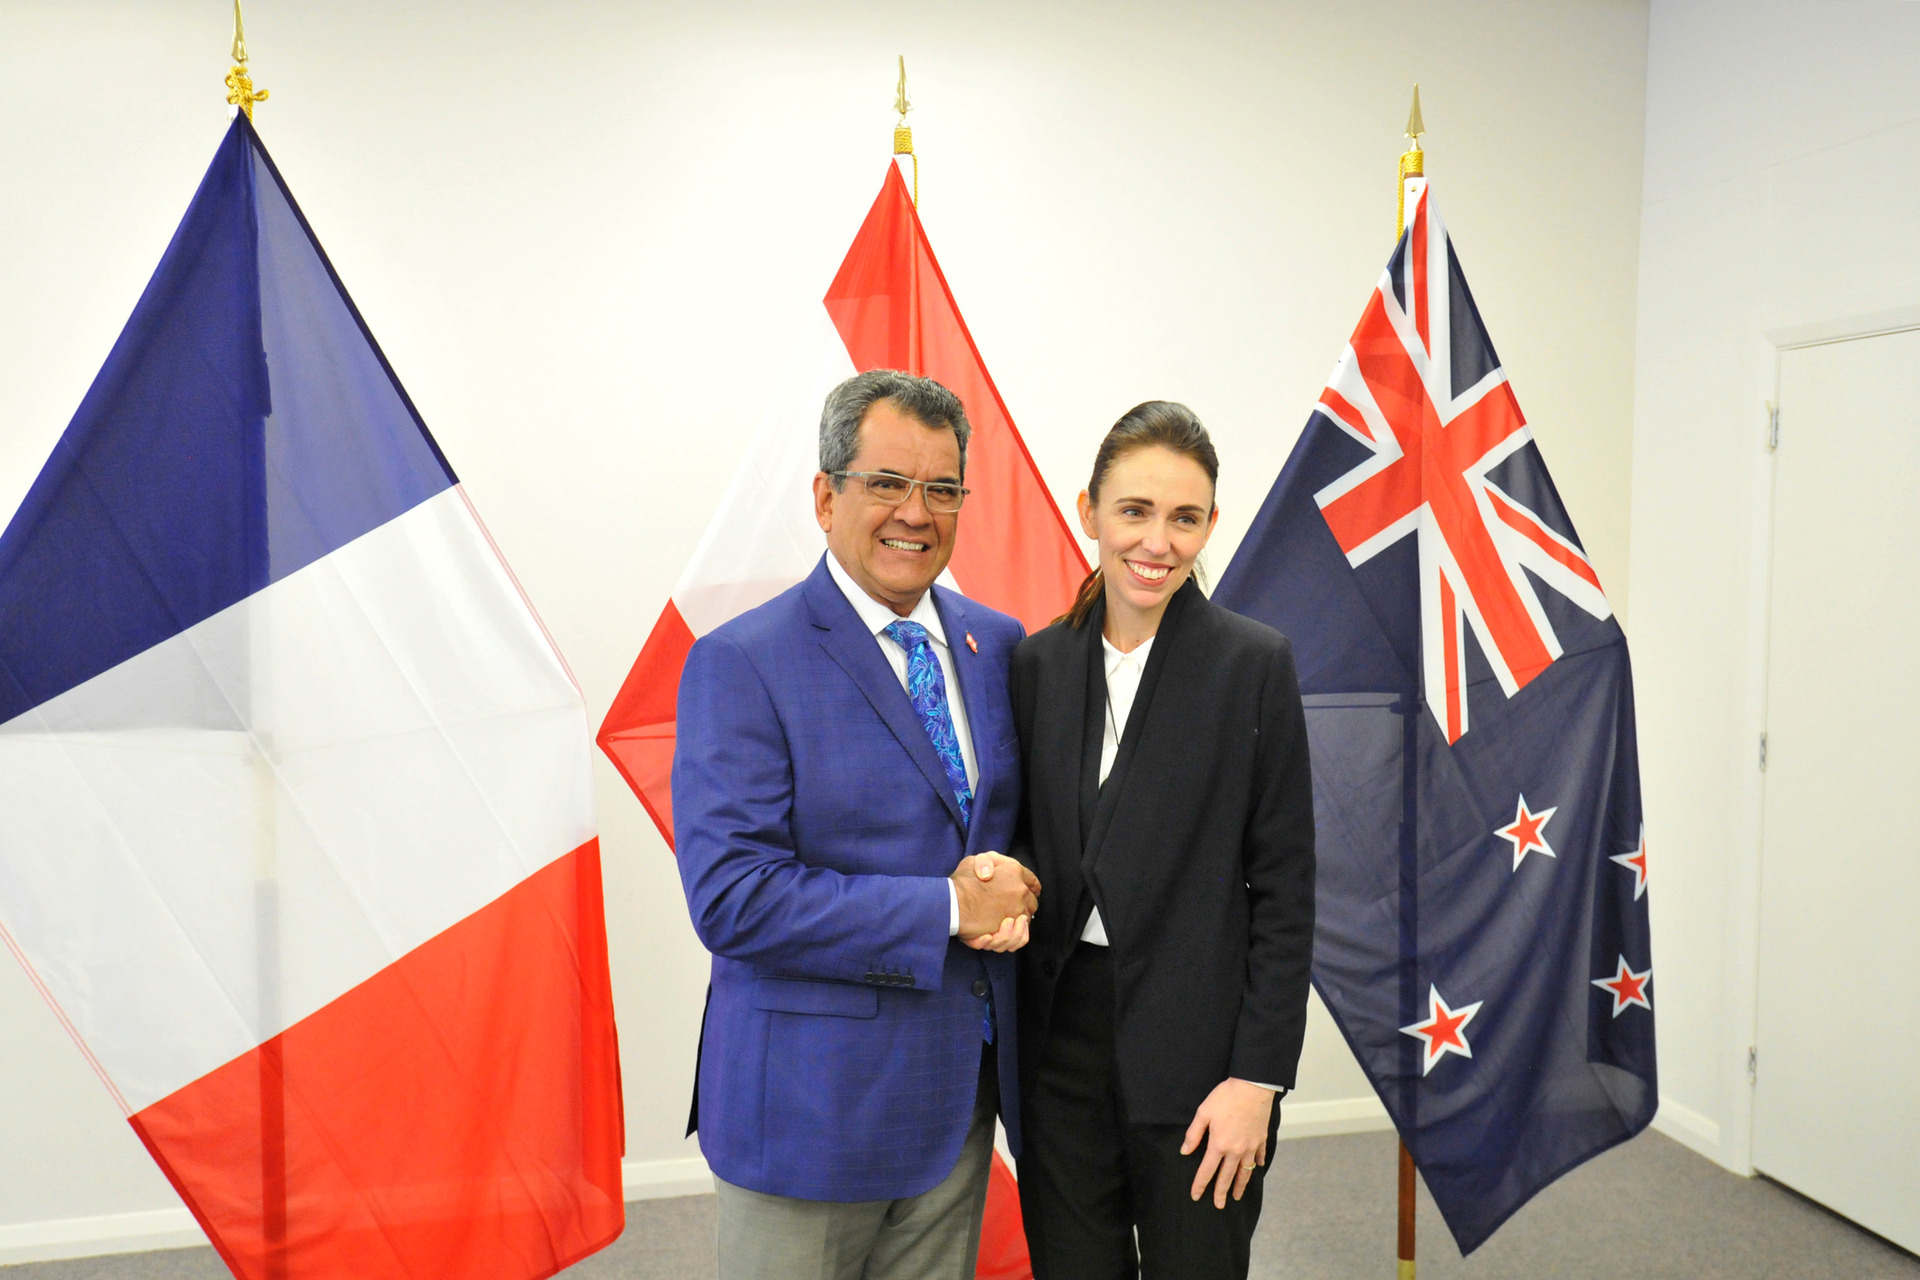 PM's warm welcome to French Polynesia's President